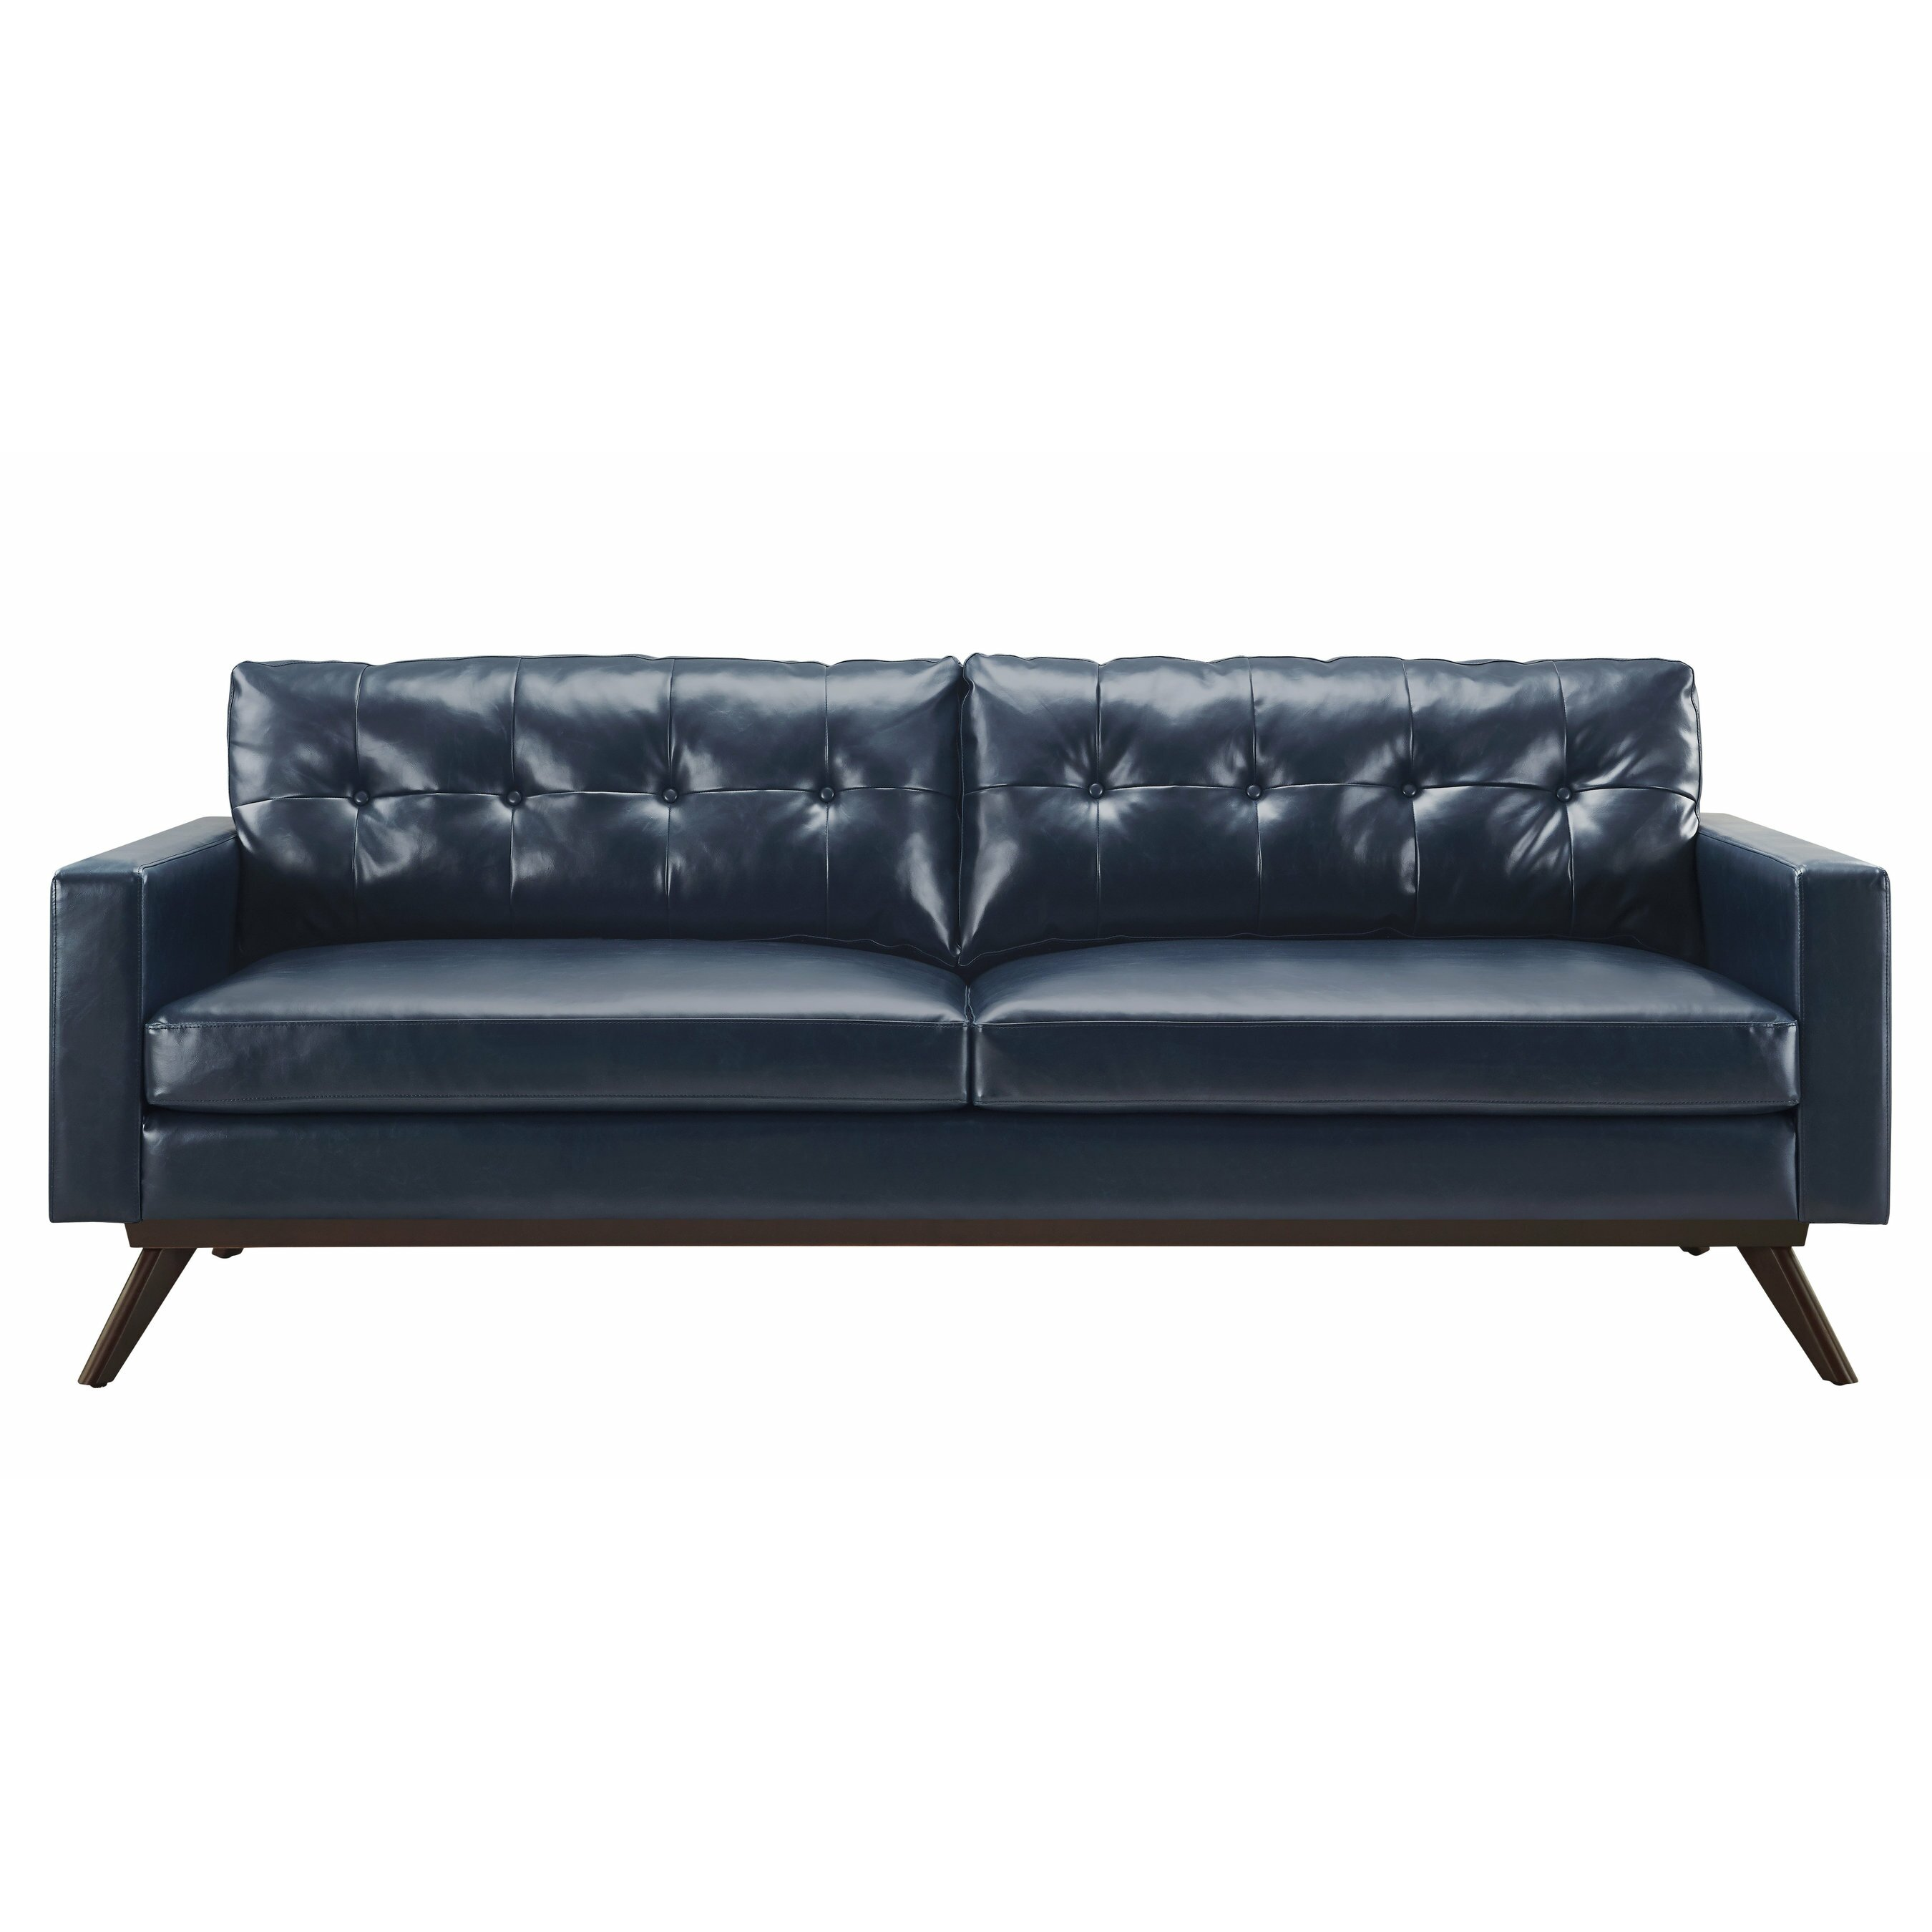 Langley street rochester sofa reviews wayfair for Outdoor furniture langley